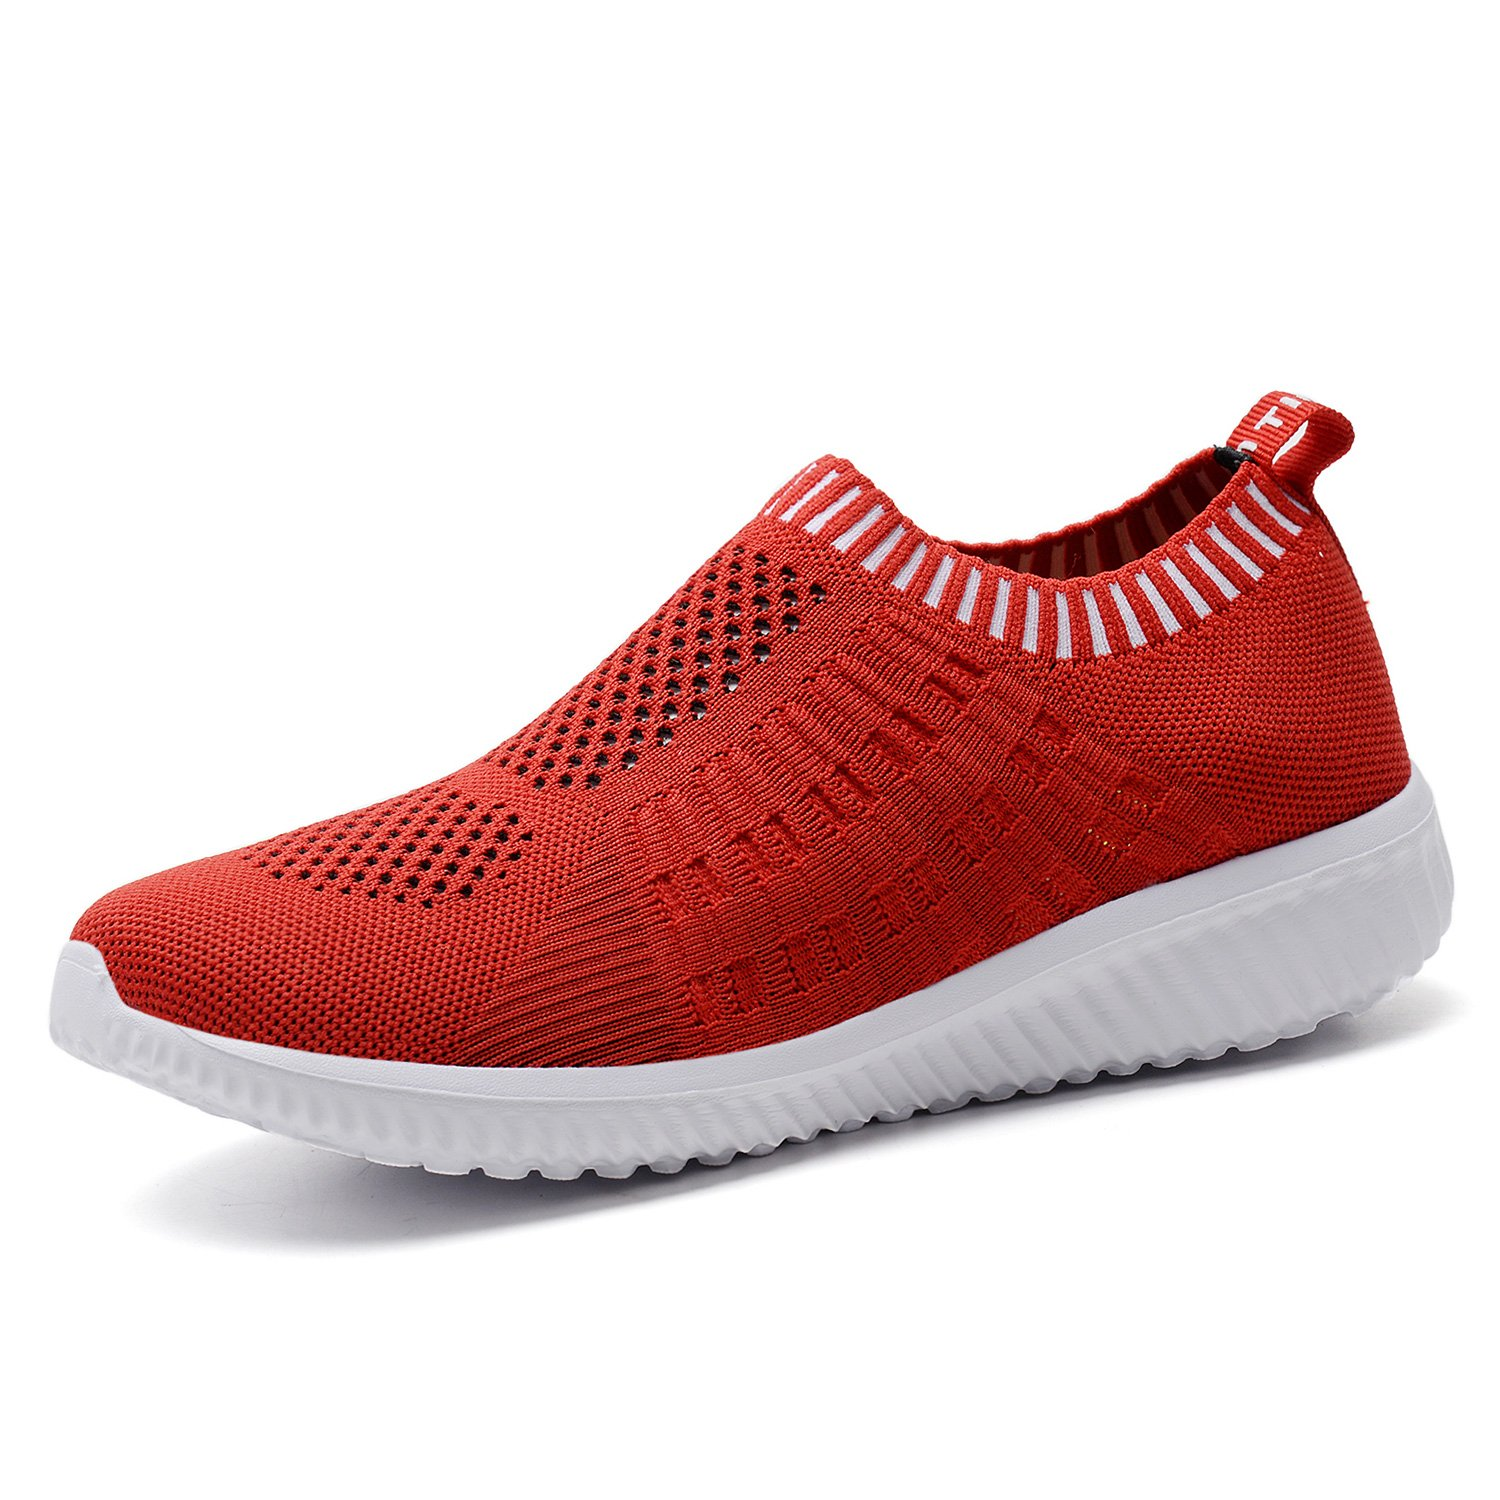 TIOSEBON Women's Athletic Shoes Casual Mesh Walking Sneakers - Breathable Running Shoes B076P9Q64T 6.5 M US|6701 Red